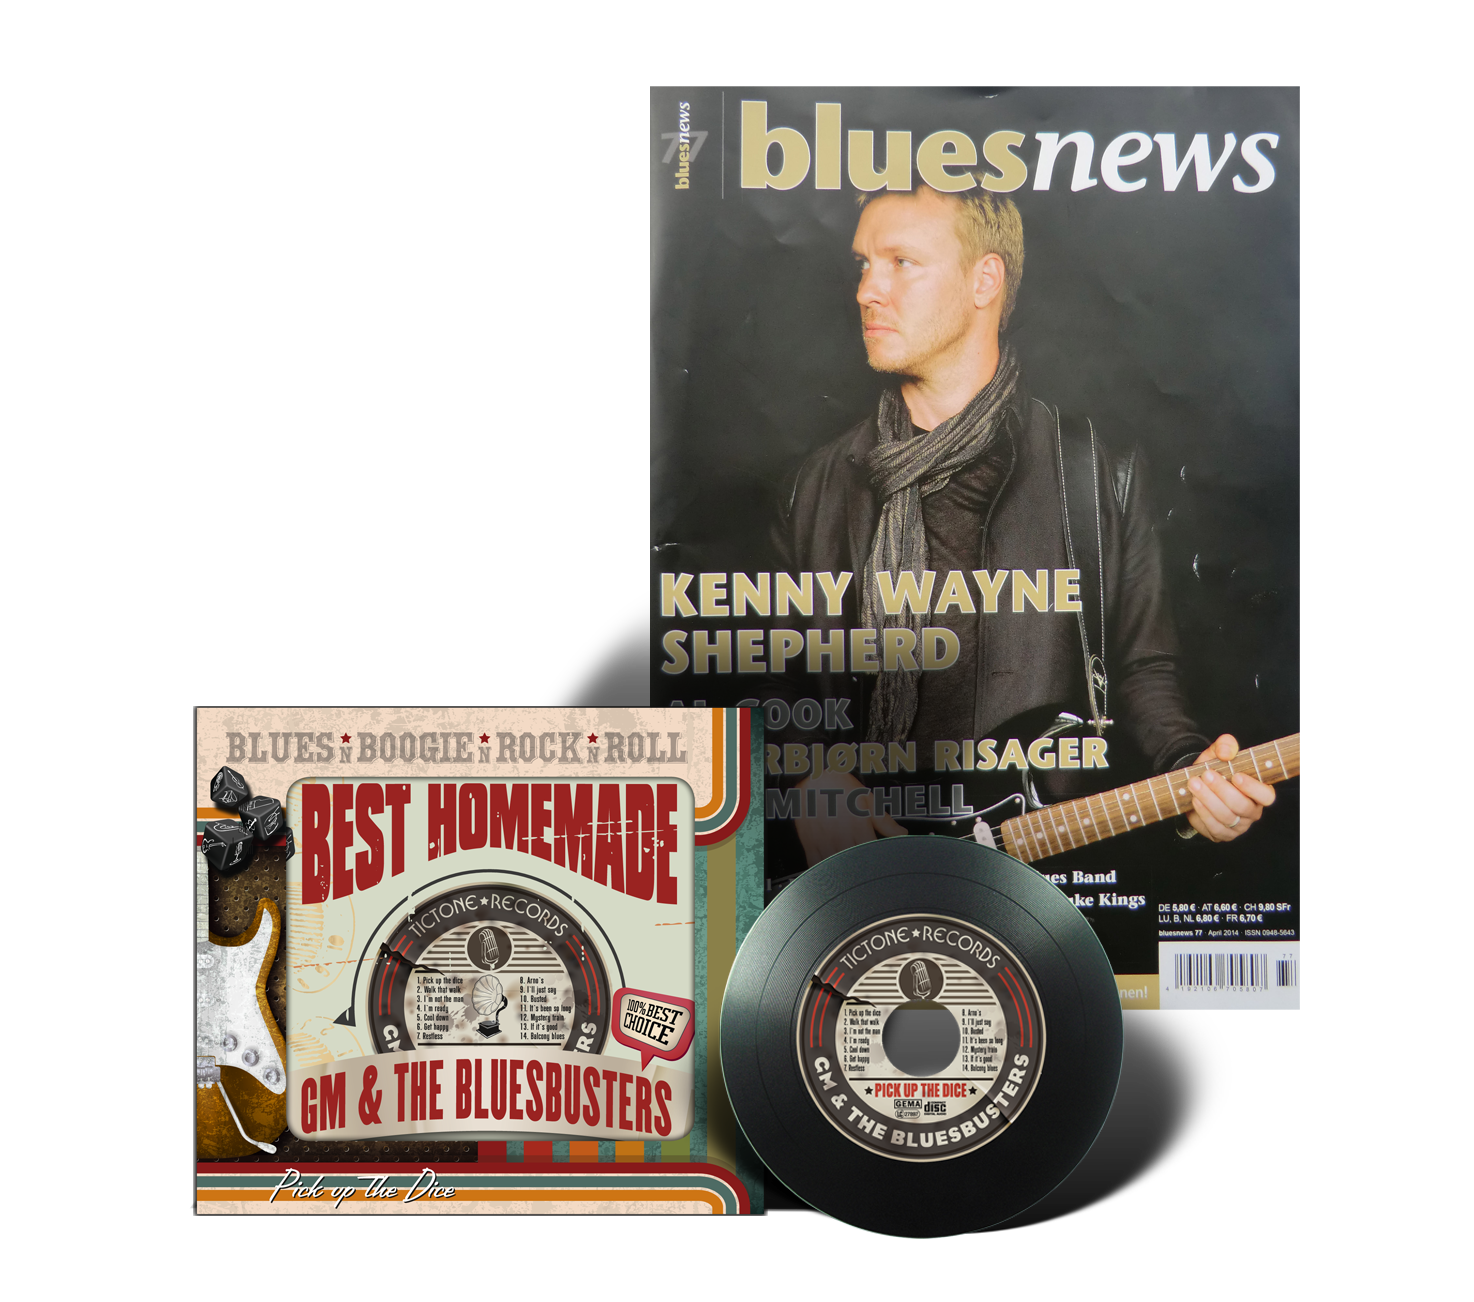 BluesNews CD Rezension2 pick up the dice